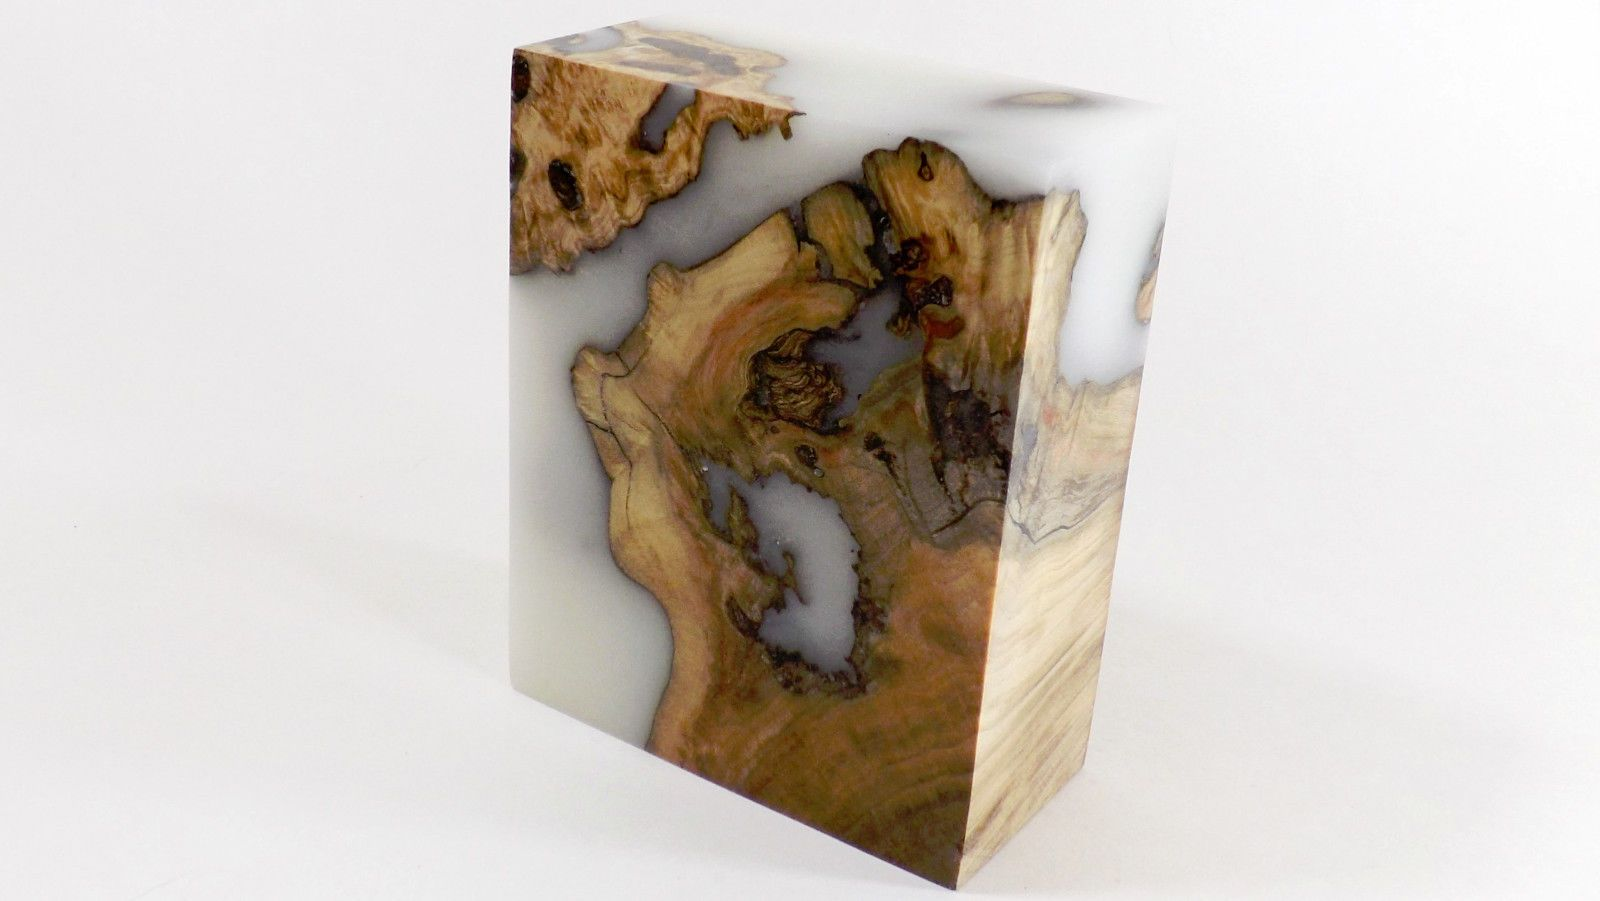 Details about Stabilized Maple Burl Wood & Acrylic Hybrid